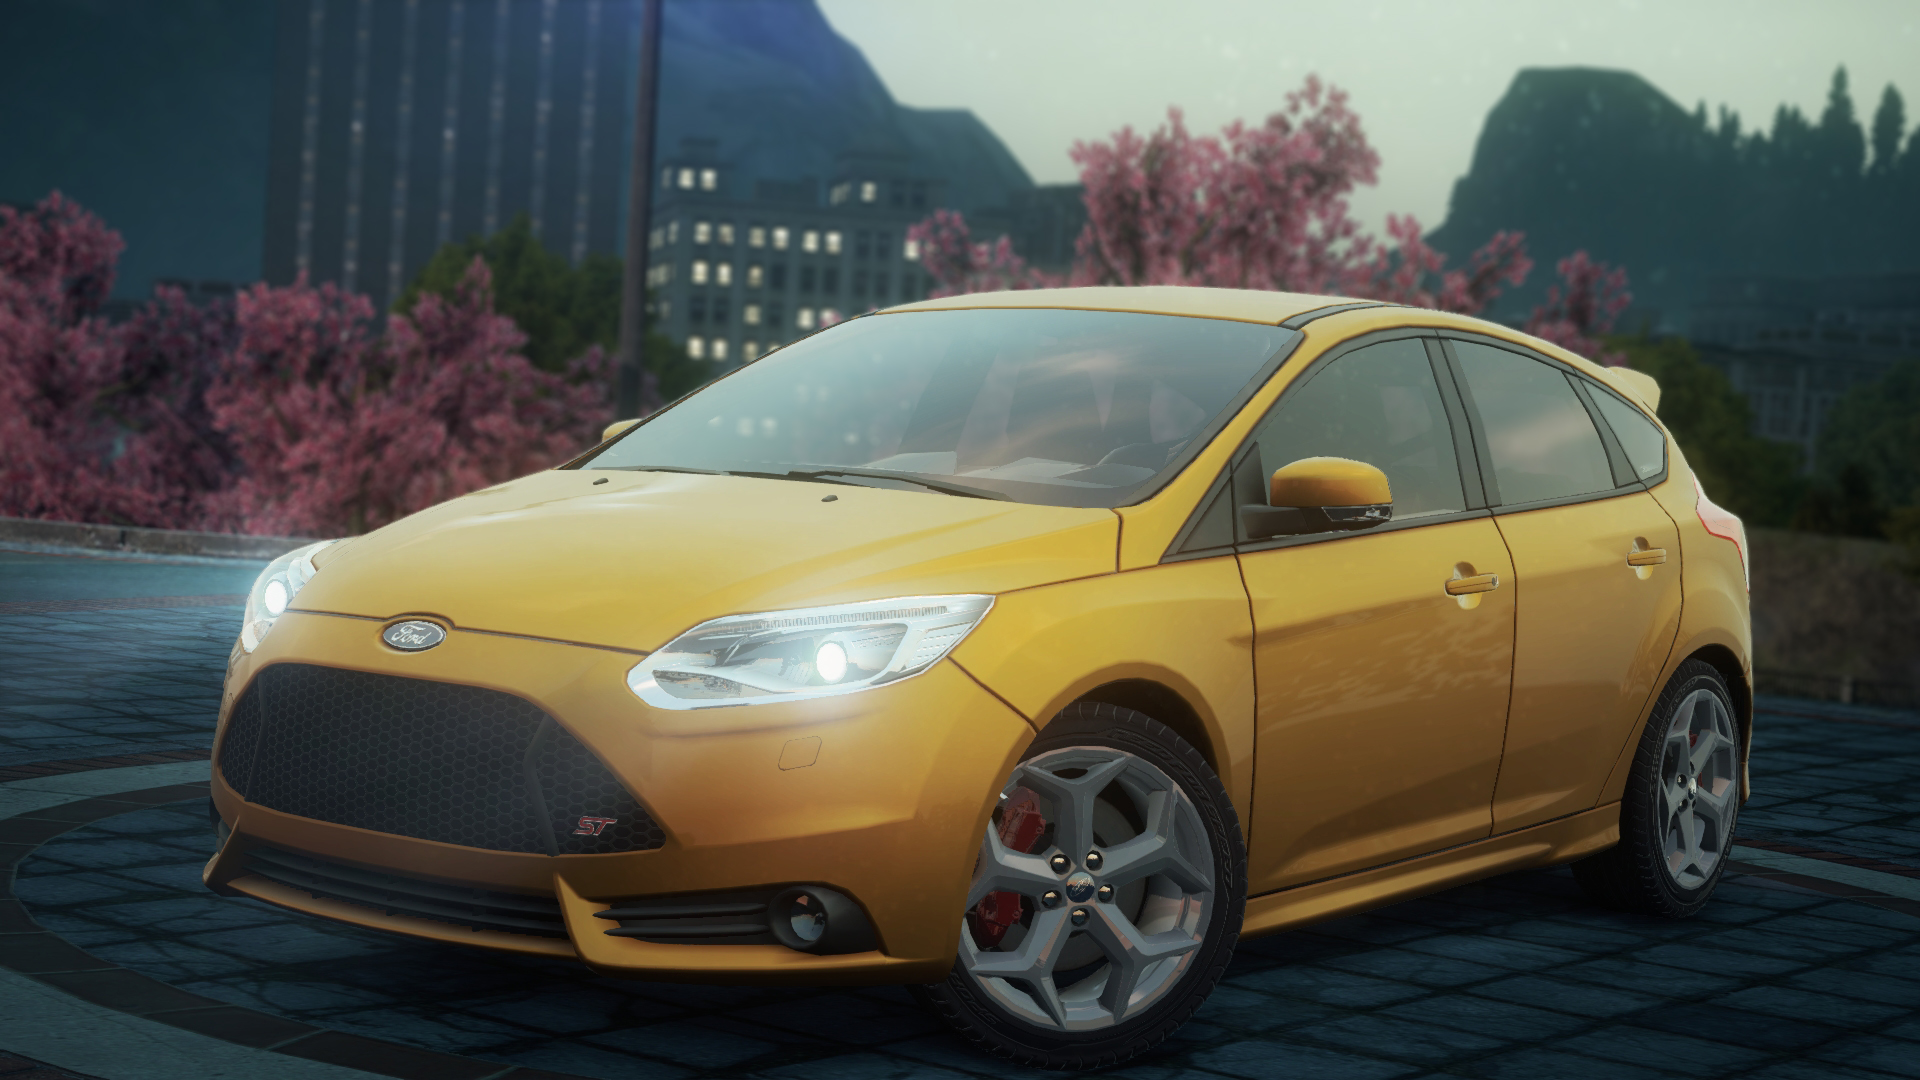 ford focus st gen 3 need for speed wiki fandom. Black Bedroom Furniture Sets. Home Design Ideas